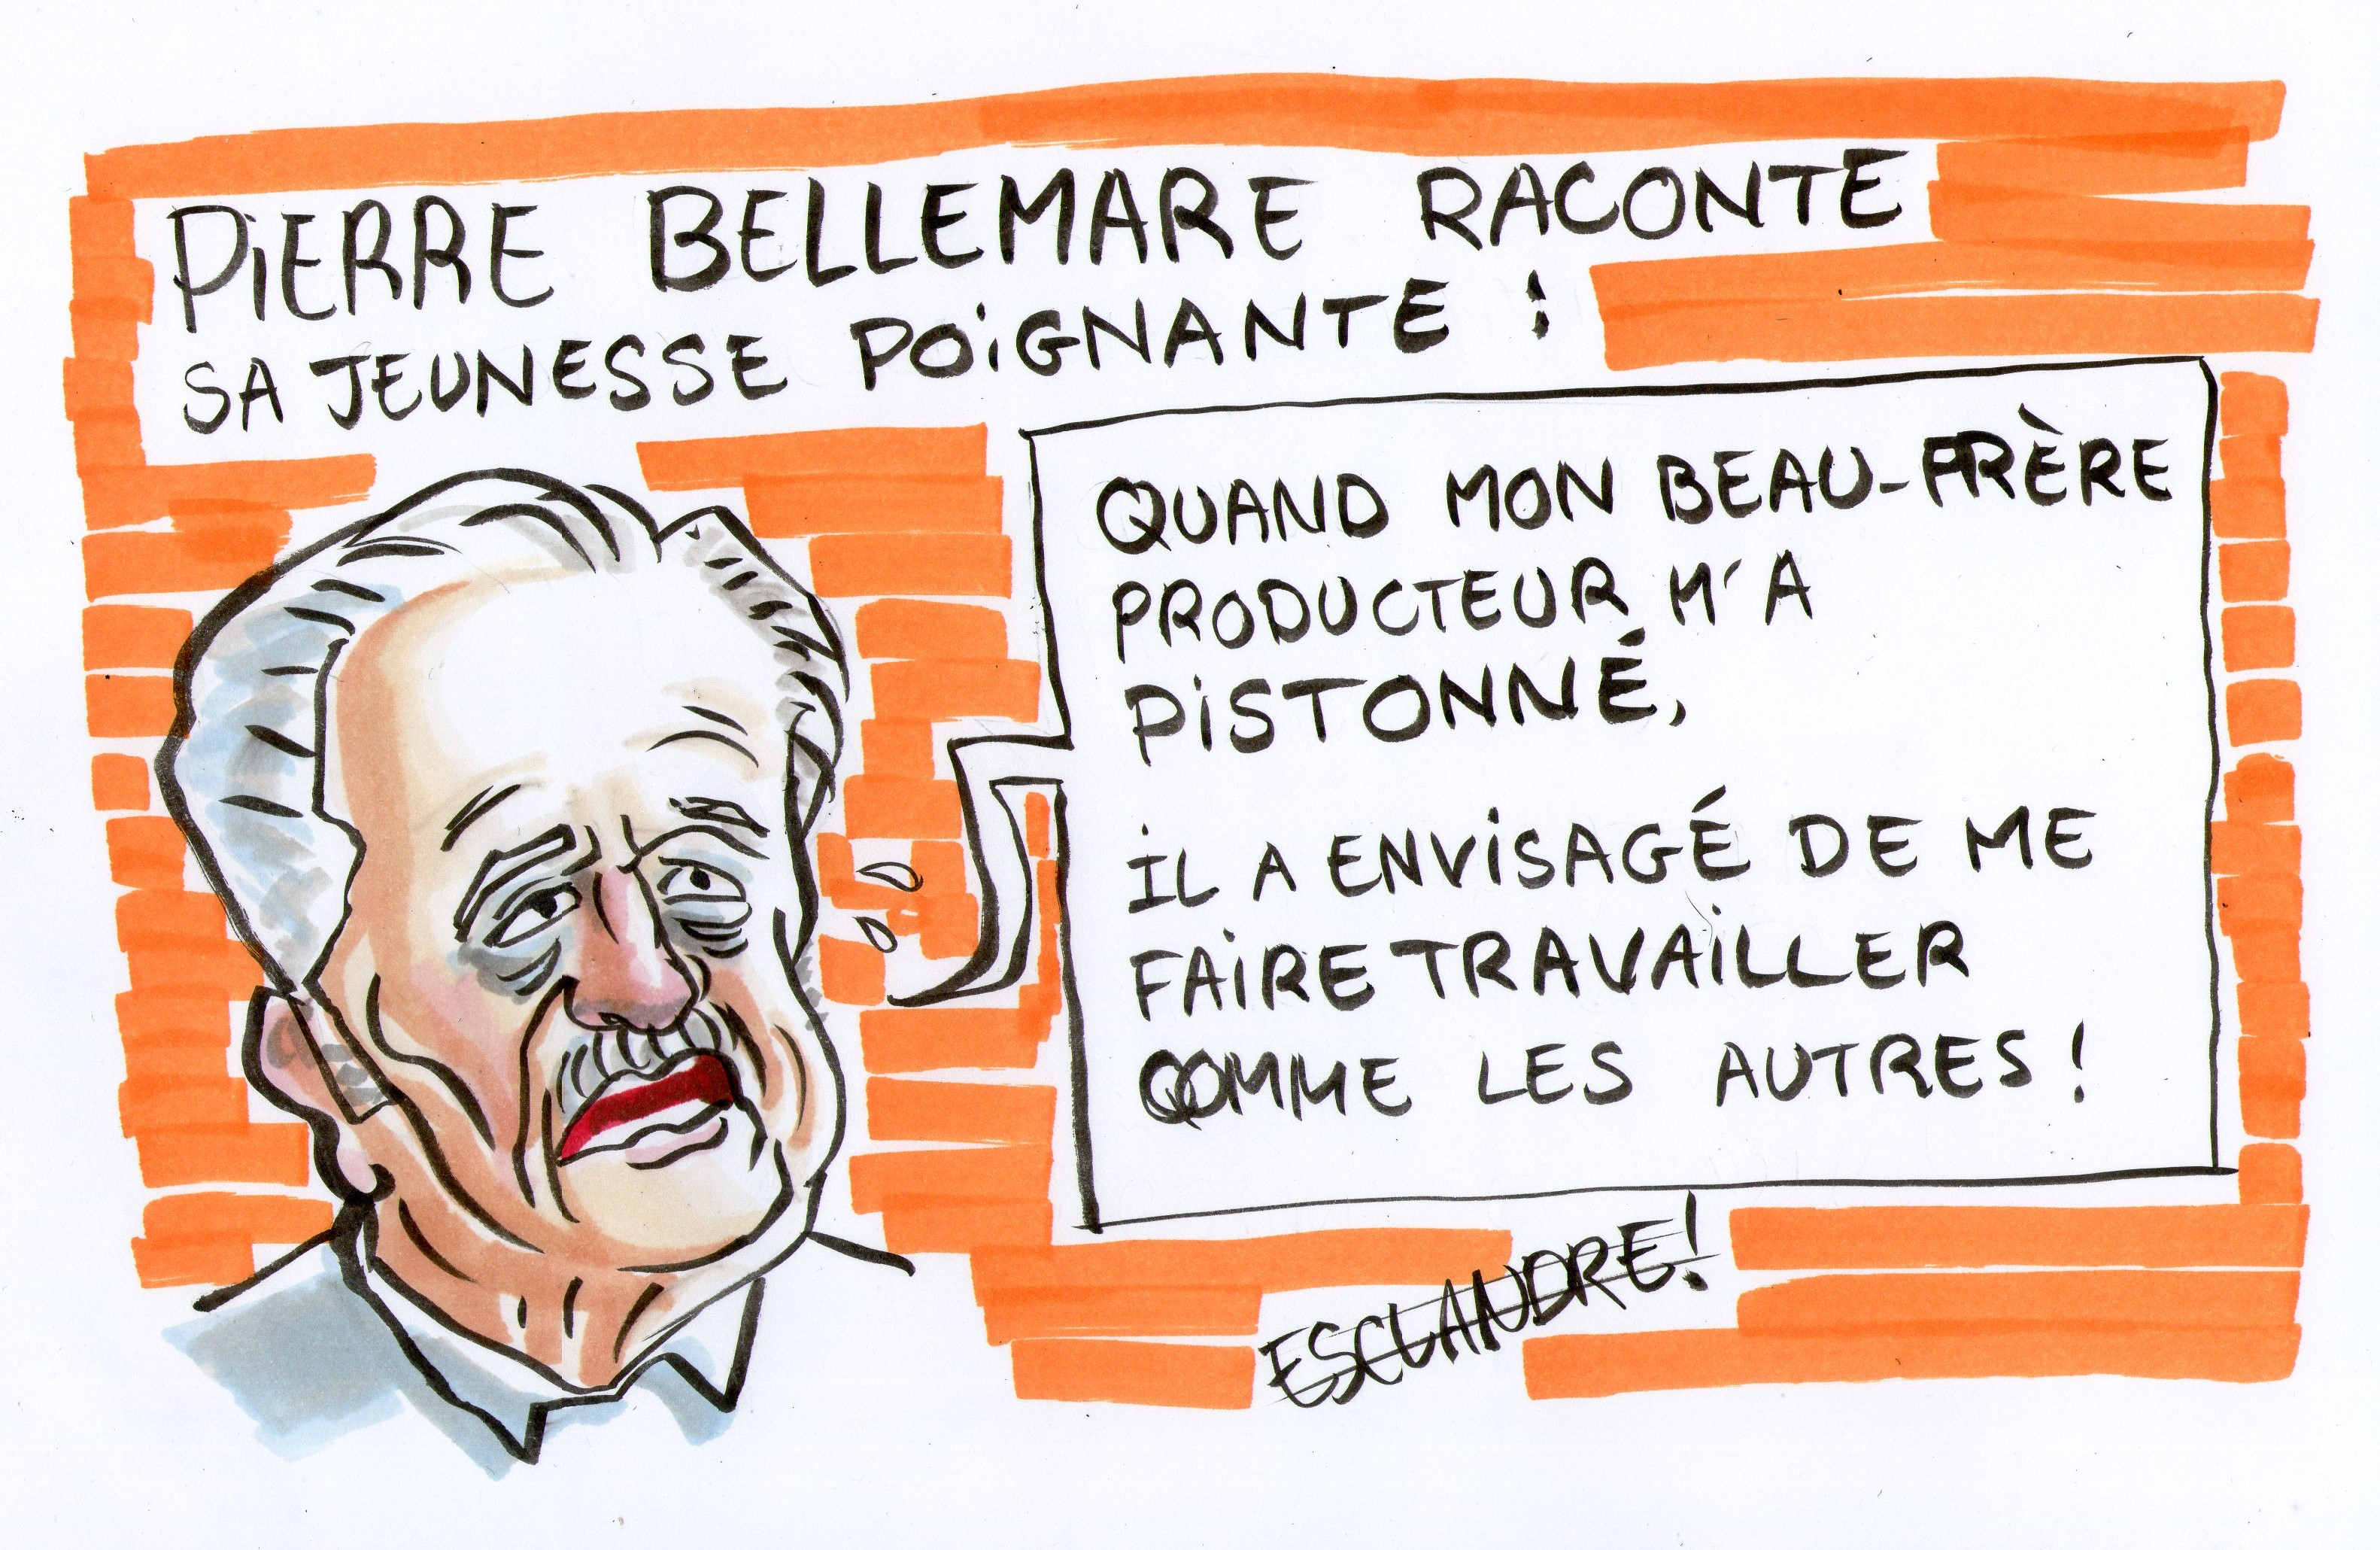 Pierre Bellemare raconte sa jeunesse